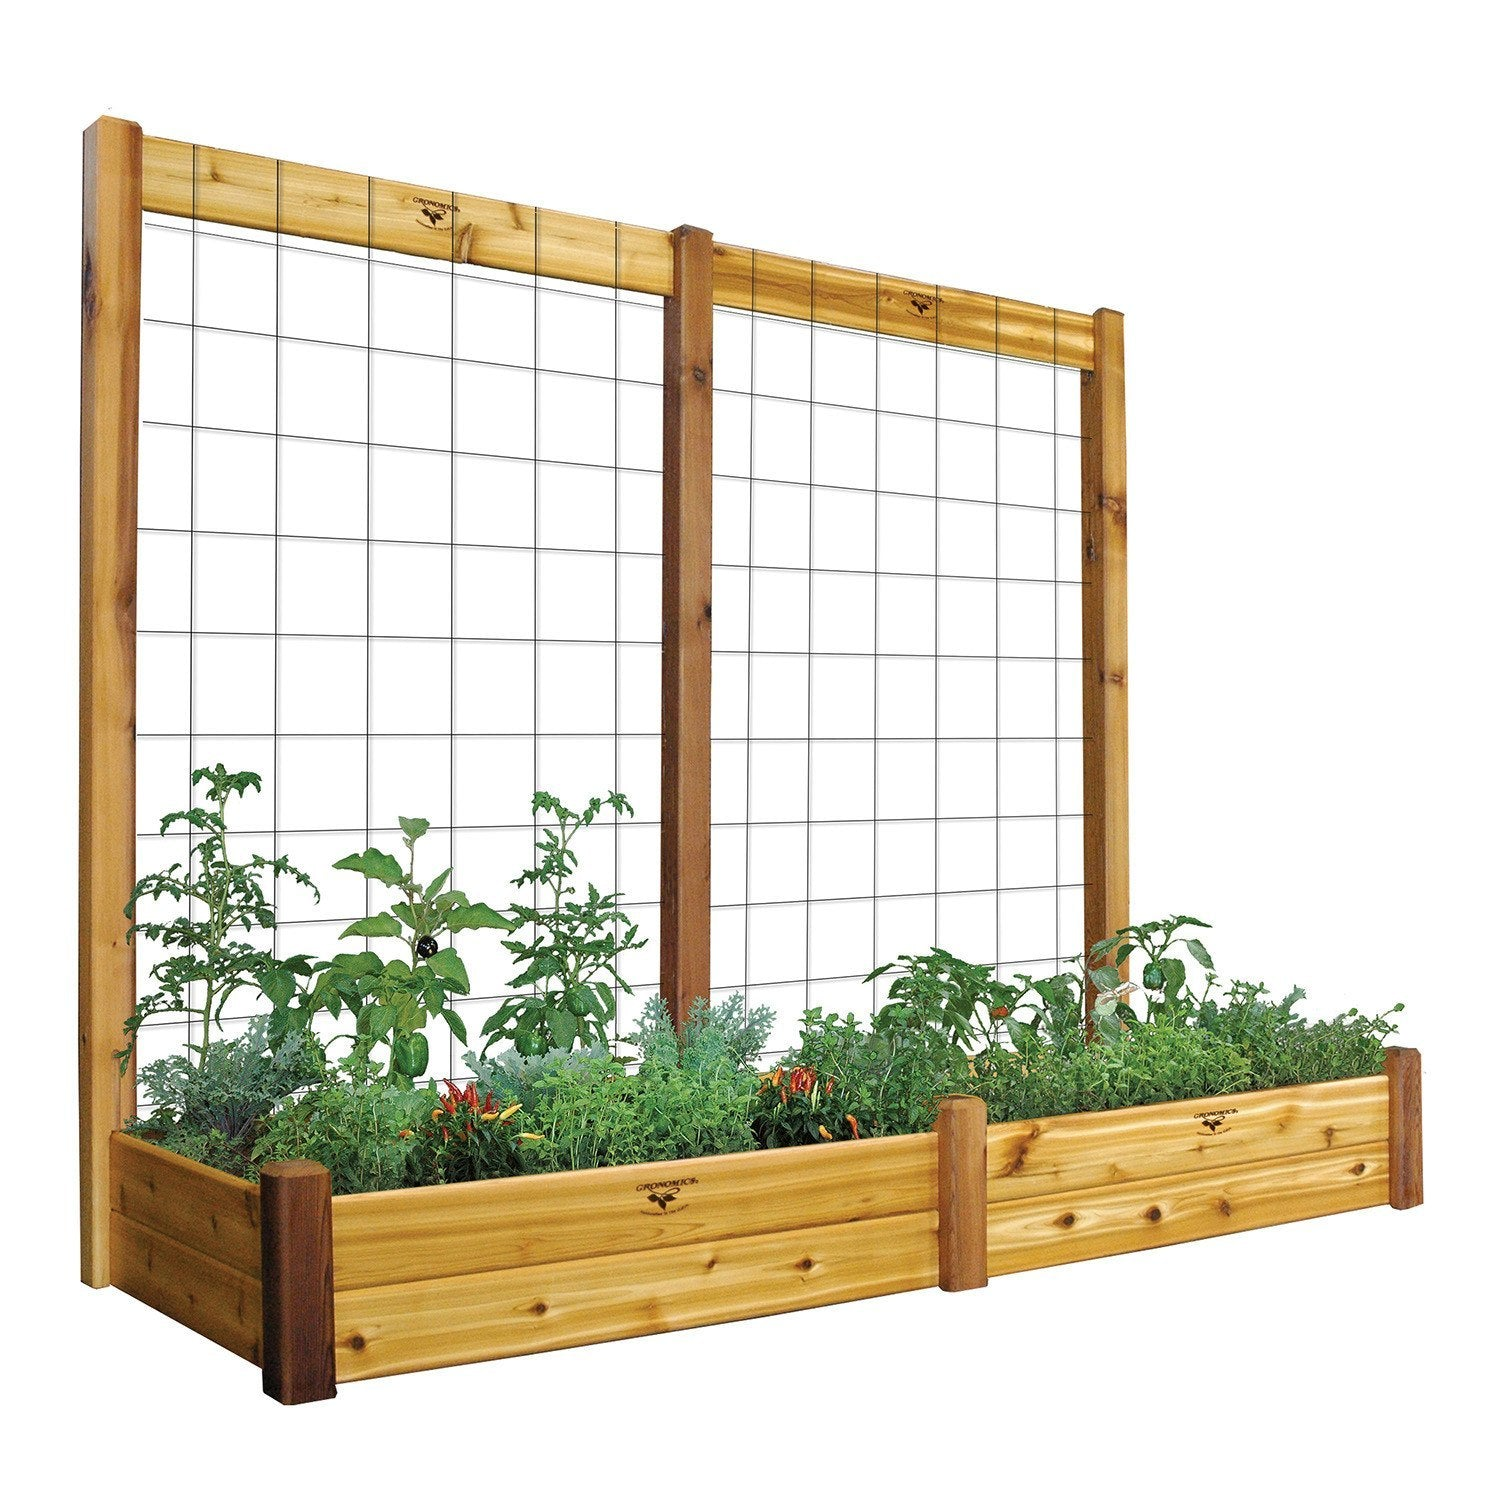 Rectangle Raised Flower Box Planter Bed 2 Tier Soil Pots: Two Tier 34 X 95 X 80 Raised Garden Bed With